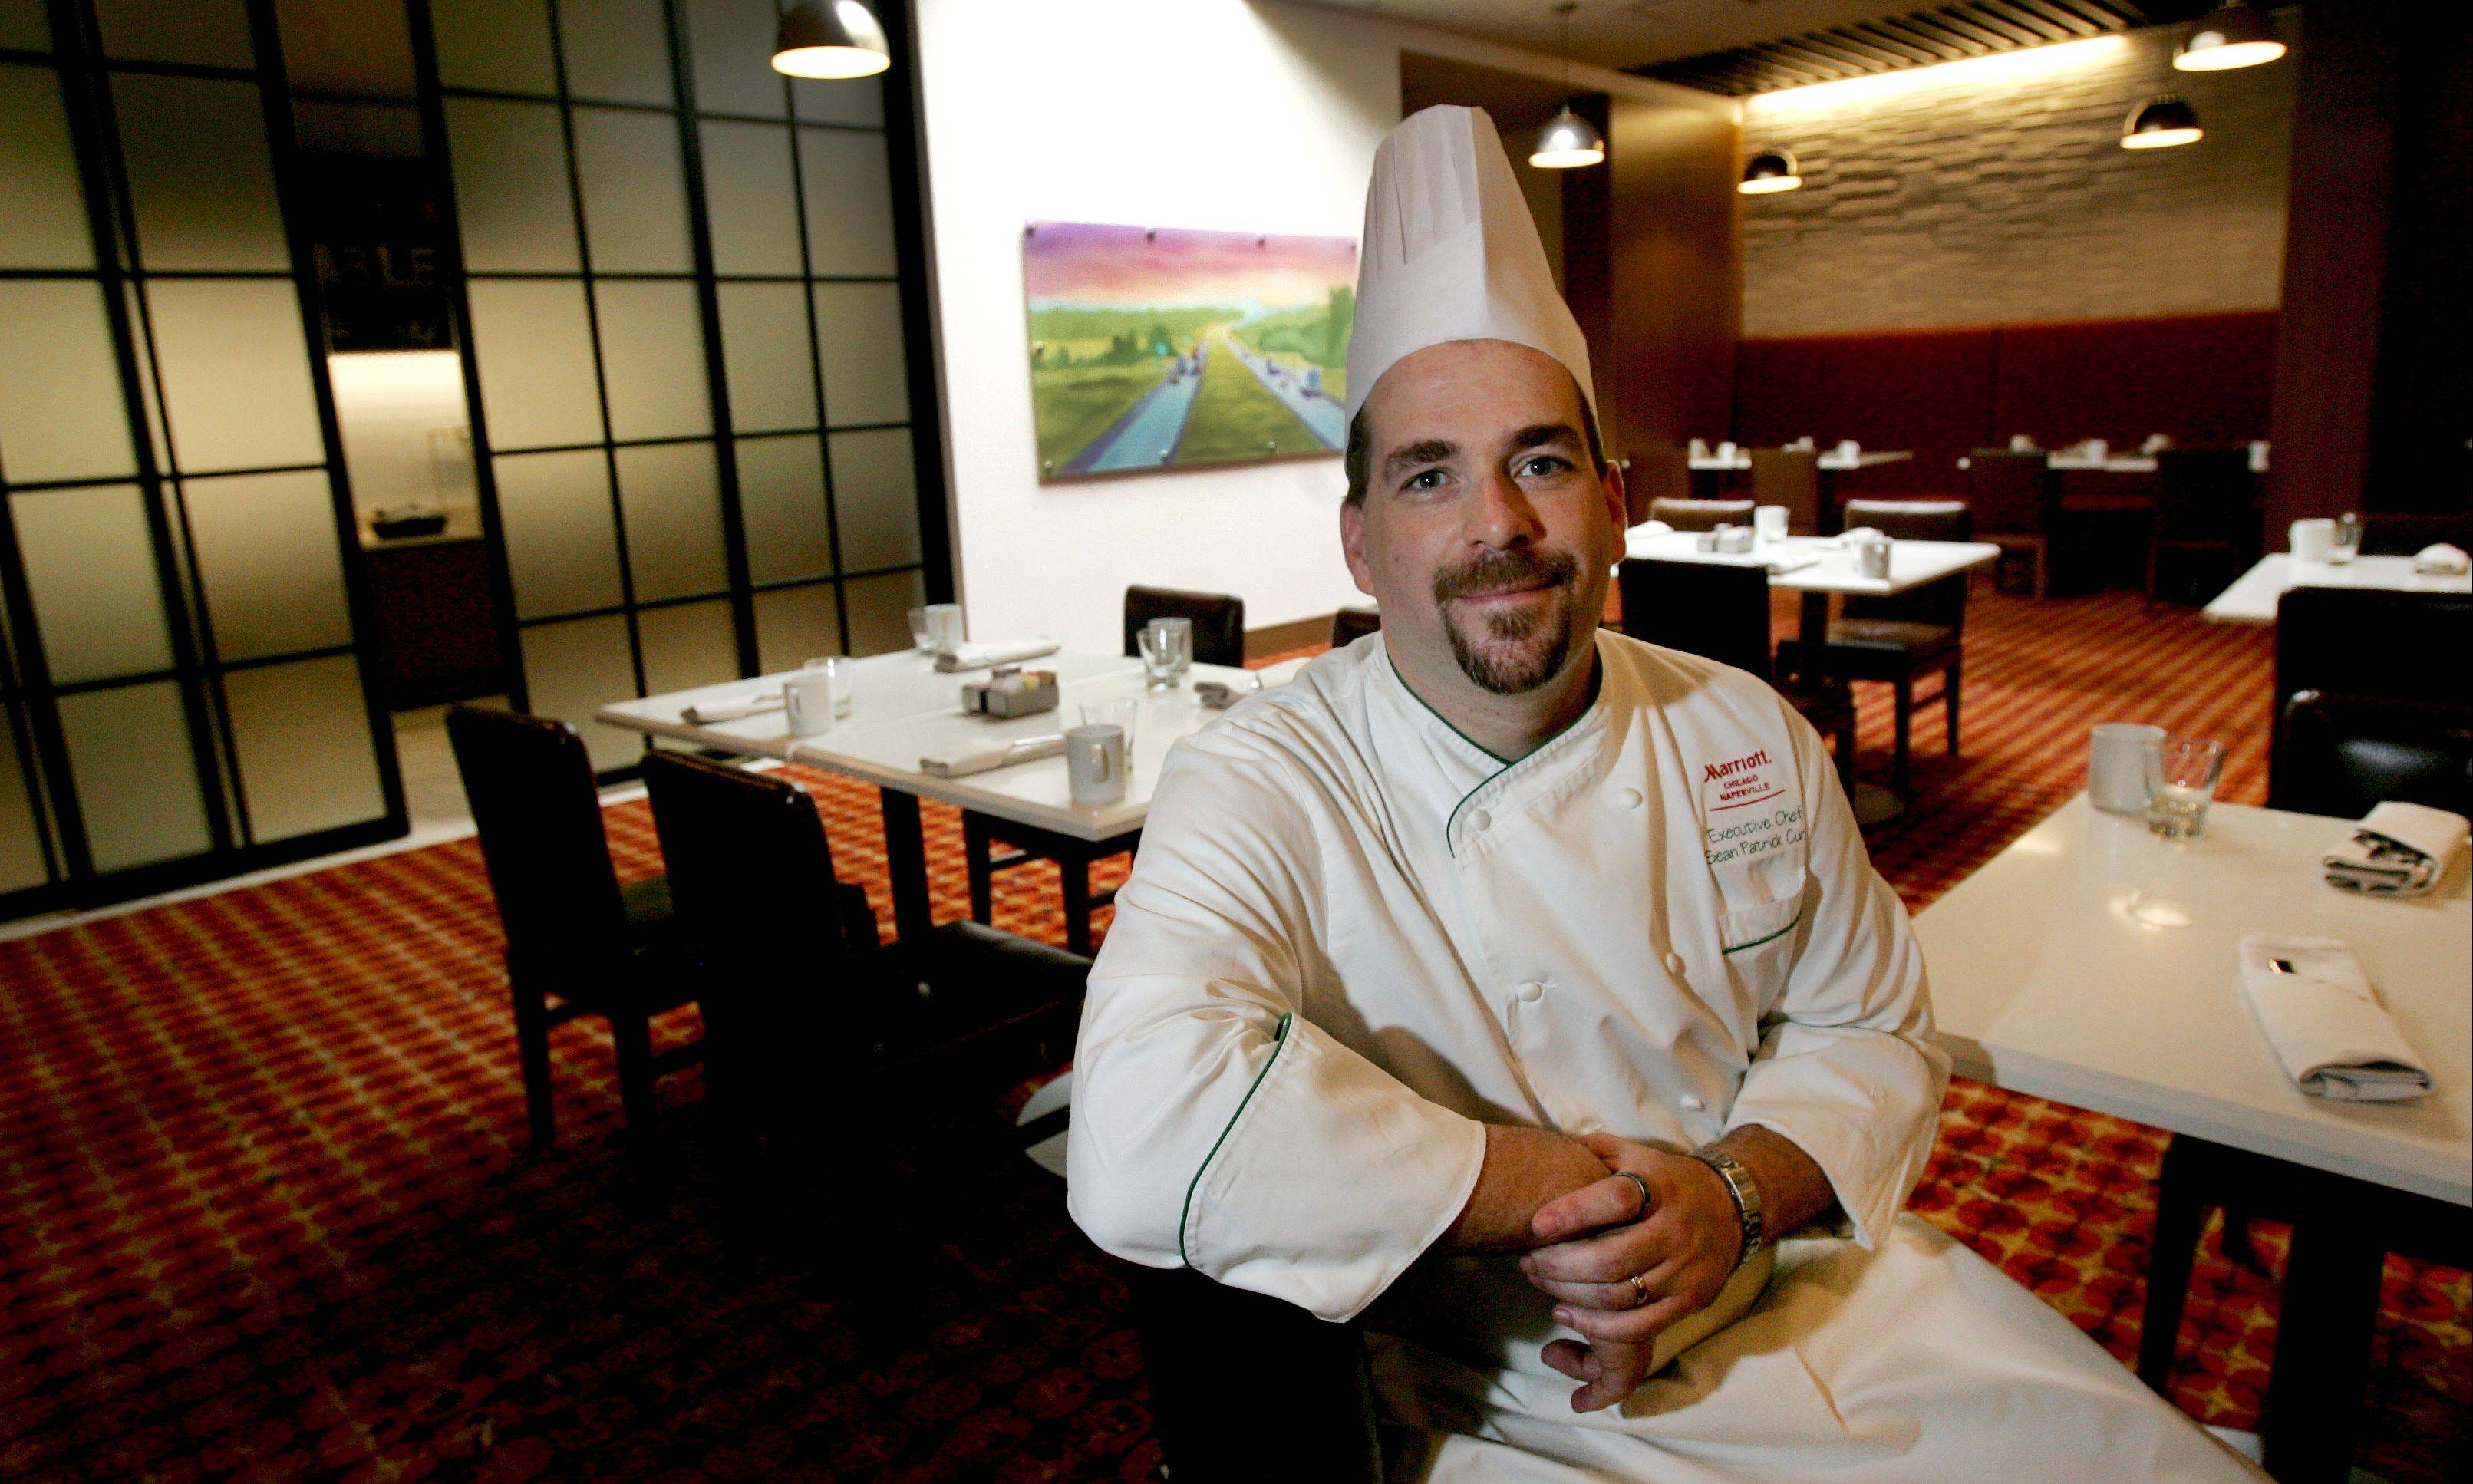 Chef du Jour: Sustainability, education on Naperville chef's platter